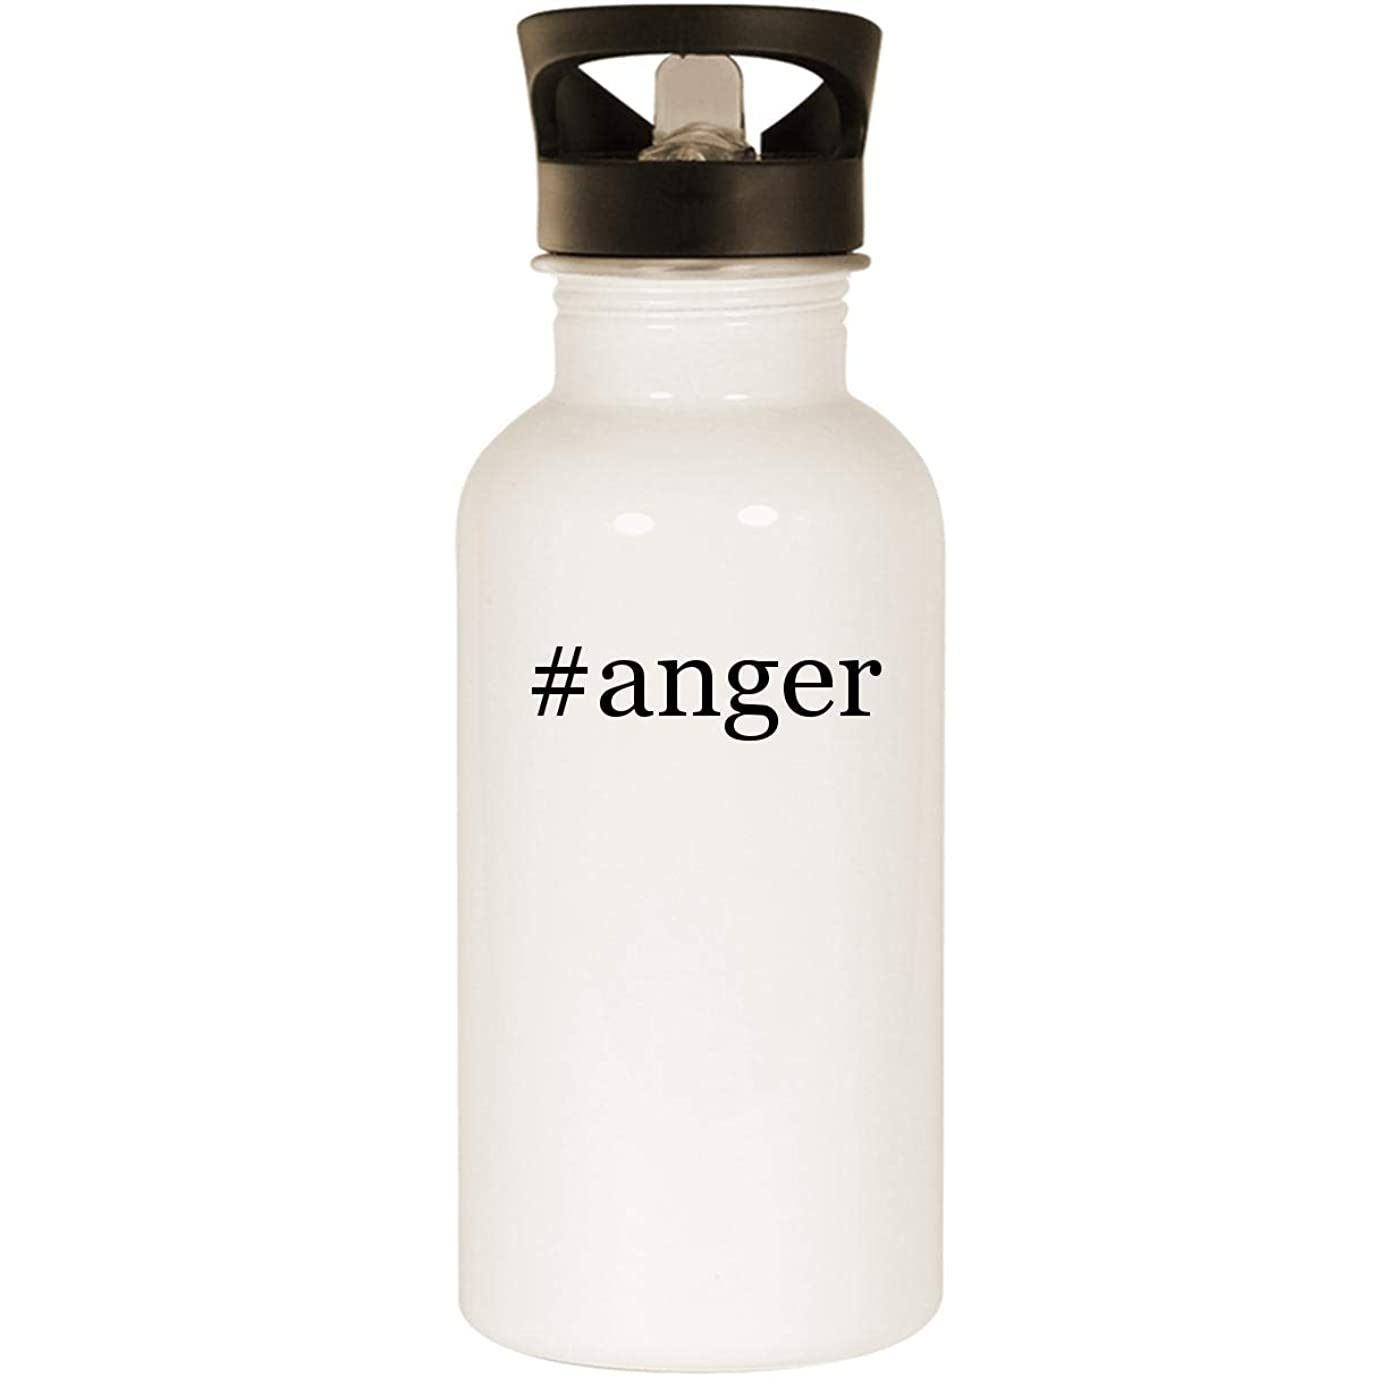 #anger - Stainless Steel Hashtag 20oz Road Ready Water Bottle, White